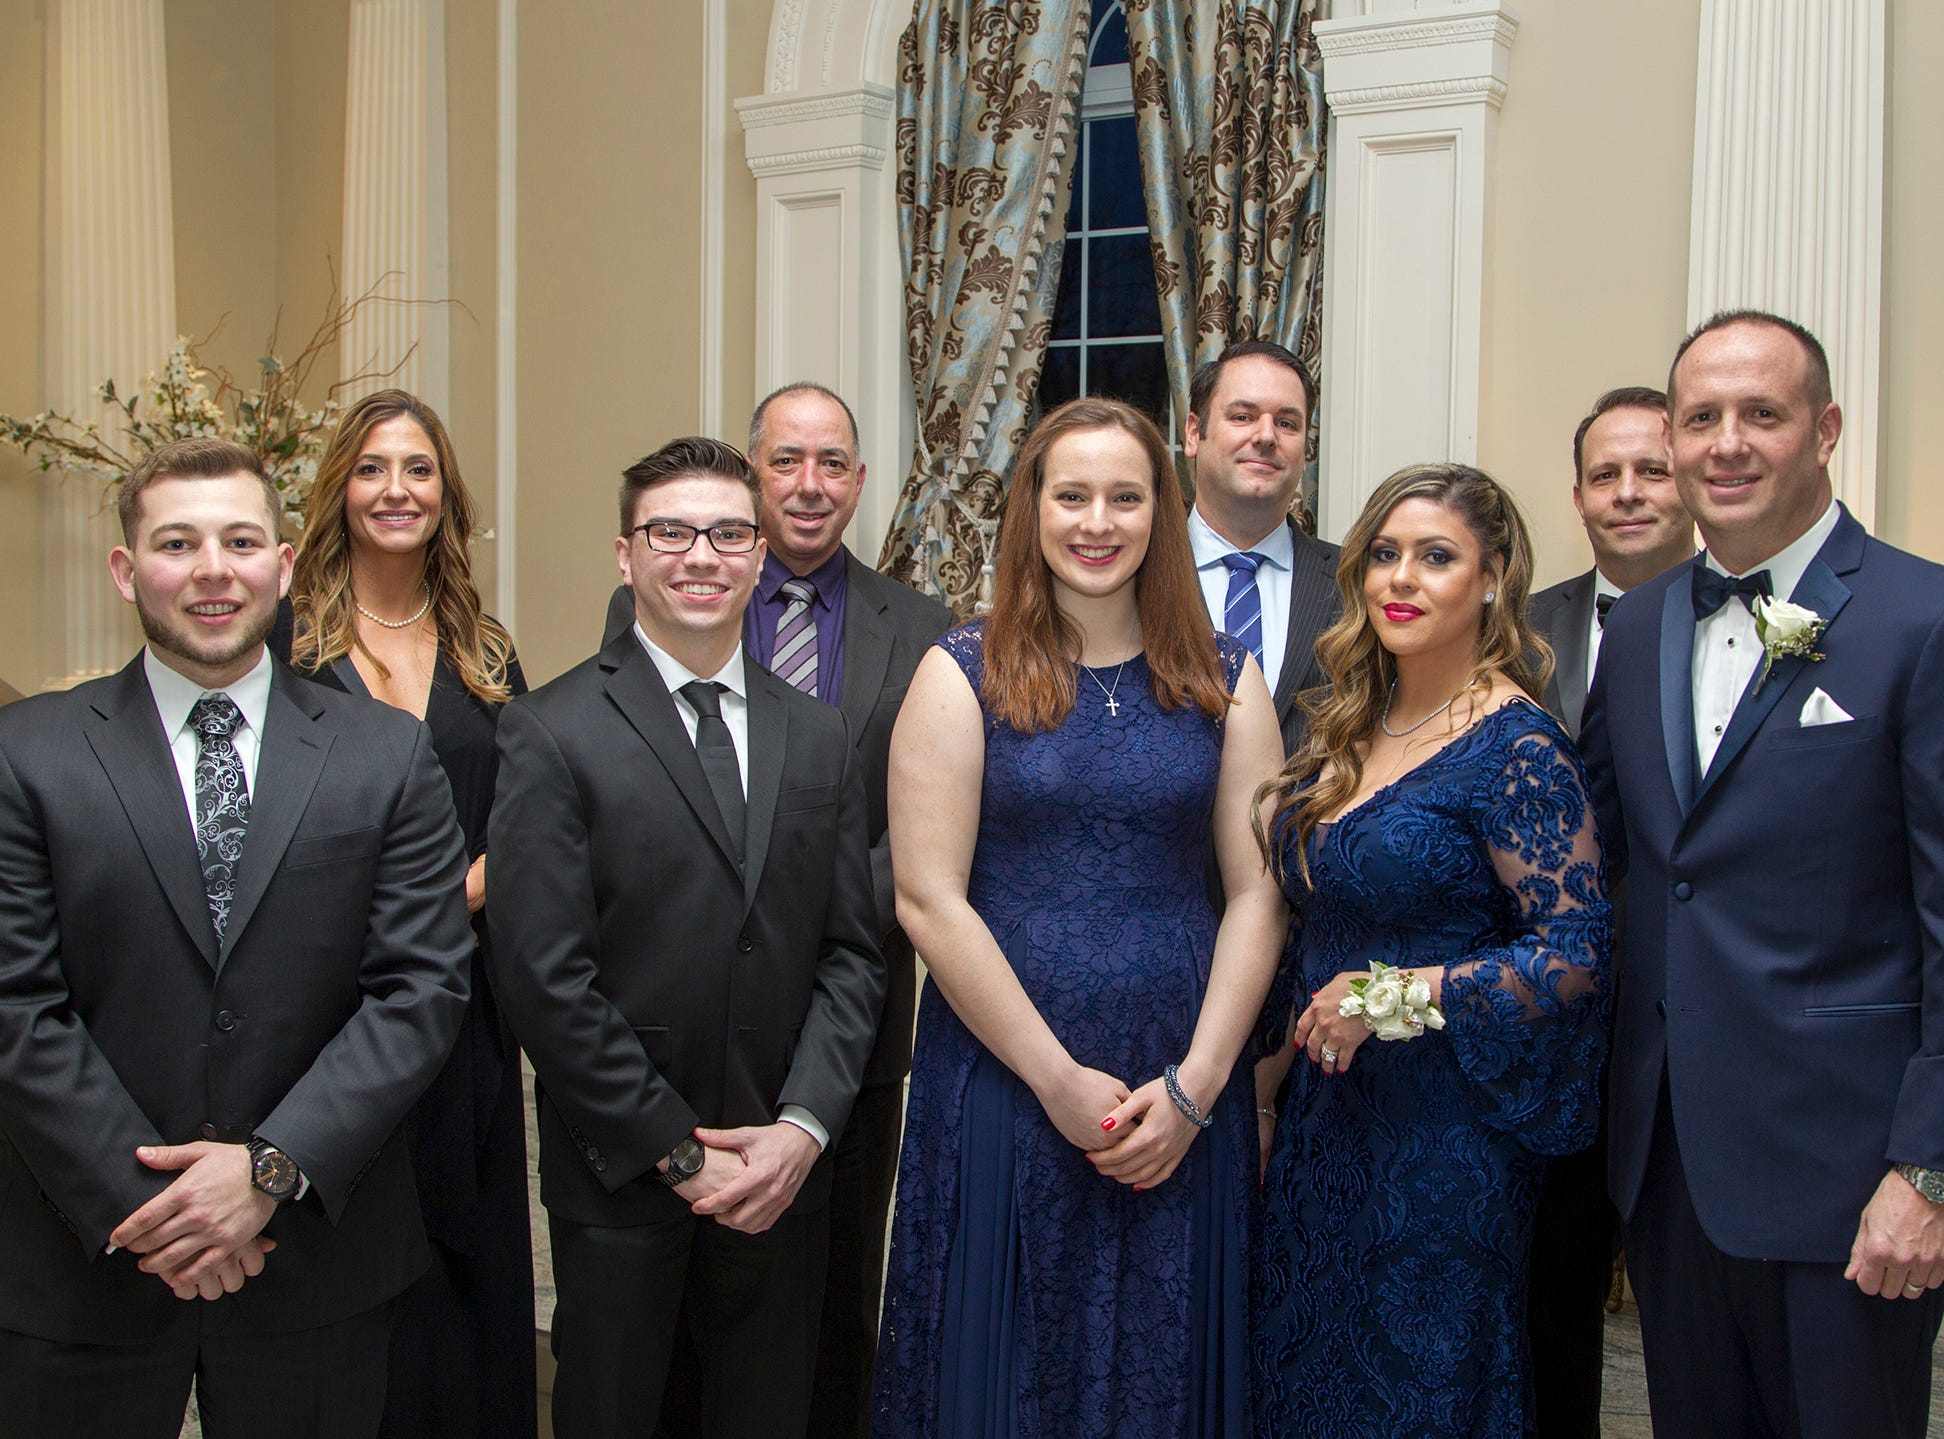 Ramapo College held its 37th Annual Distinguished Citizens Dinner at Rockleigh Country Club. 03/02/2019